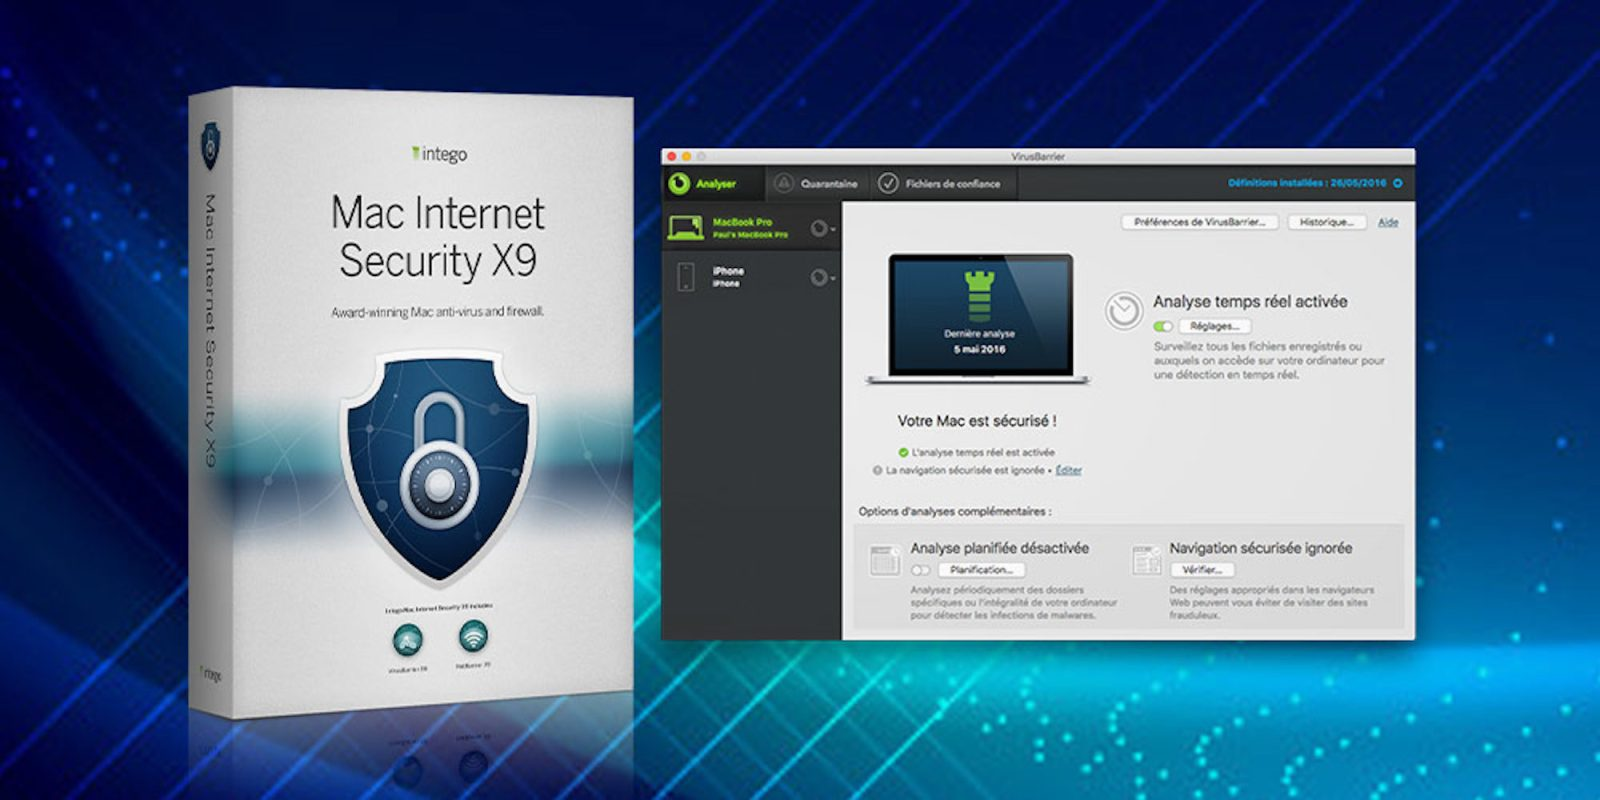 mac internet security x9 review